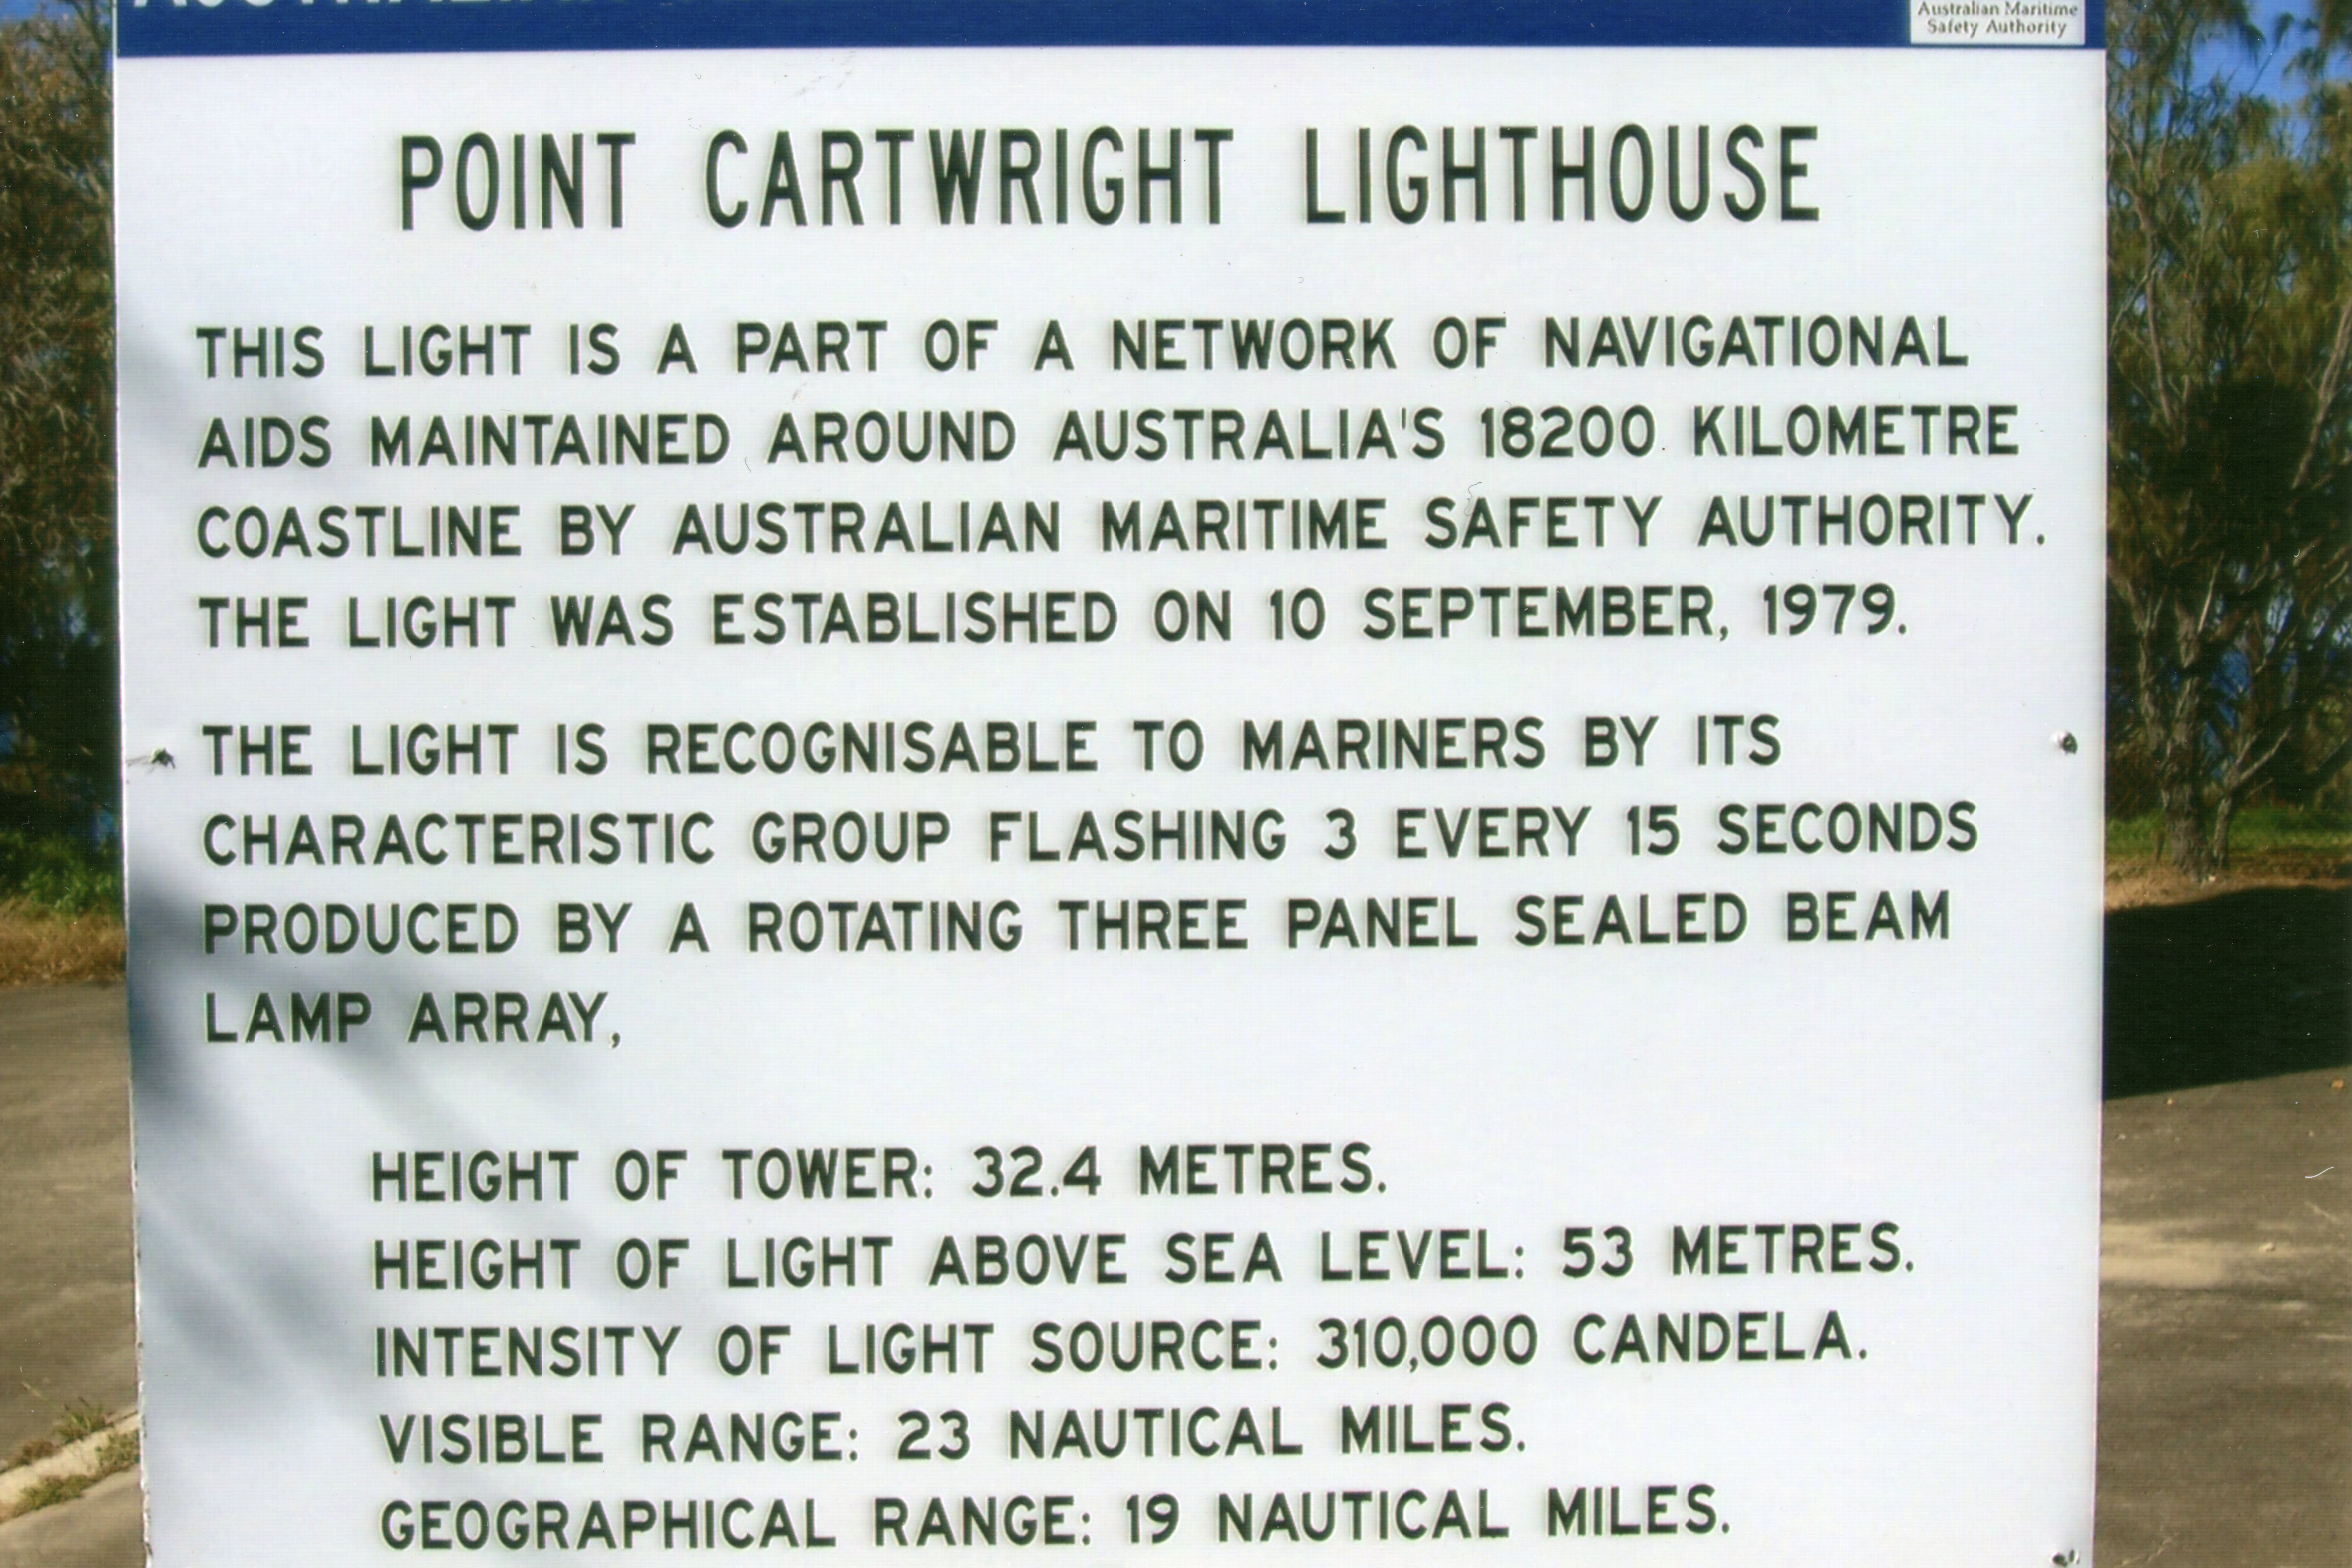 Point Cartwright Lighthouse